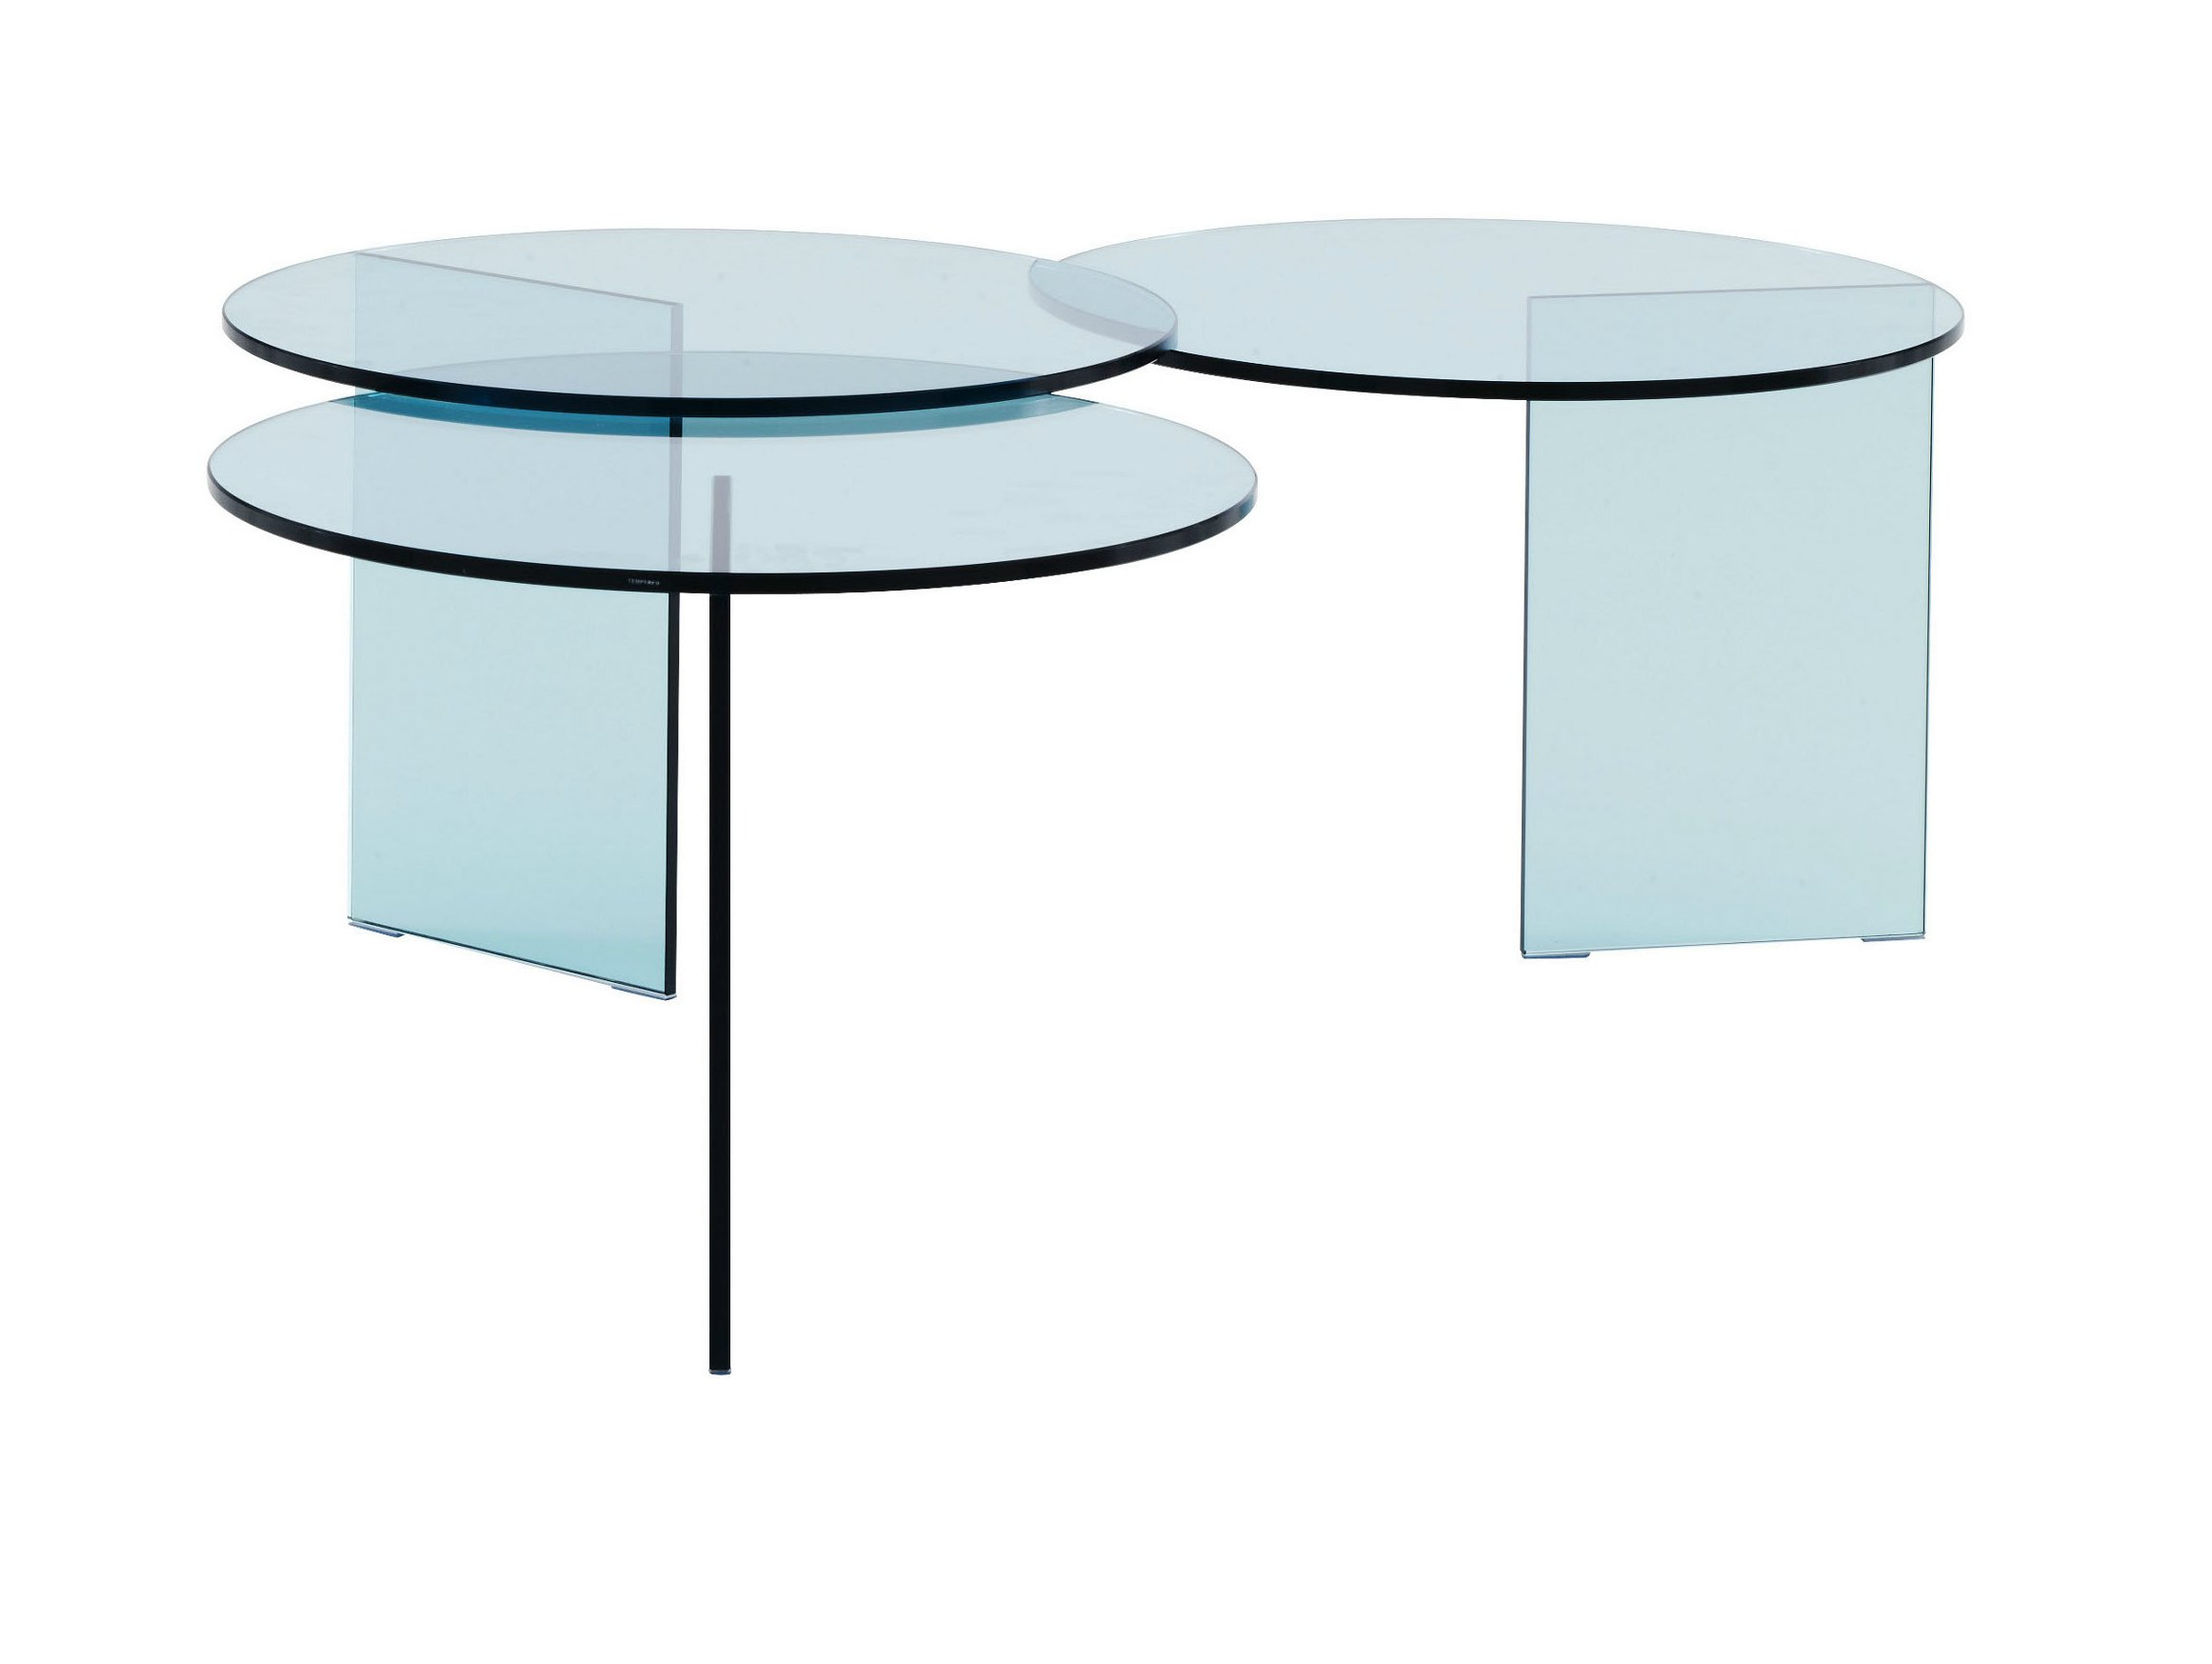 Table basse en verre ligne roset for Ventouse pour table basse en verre